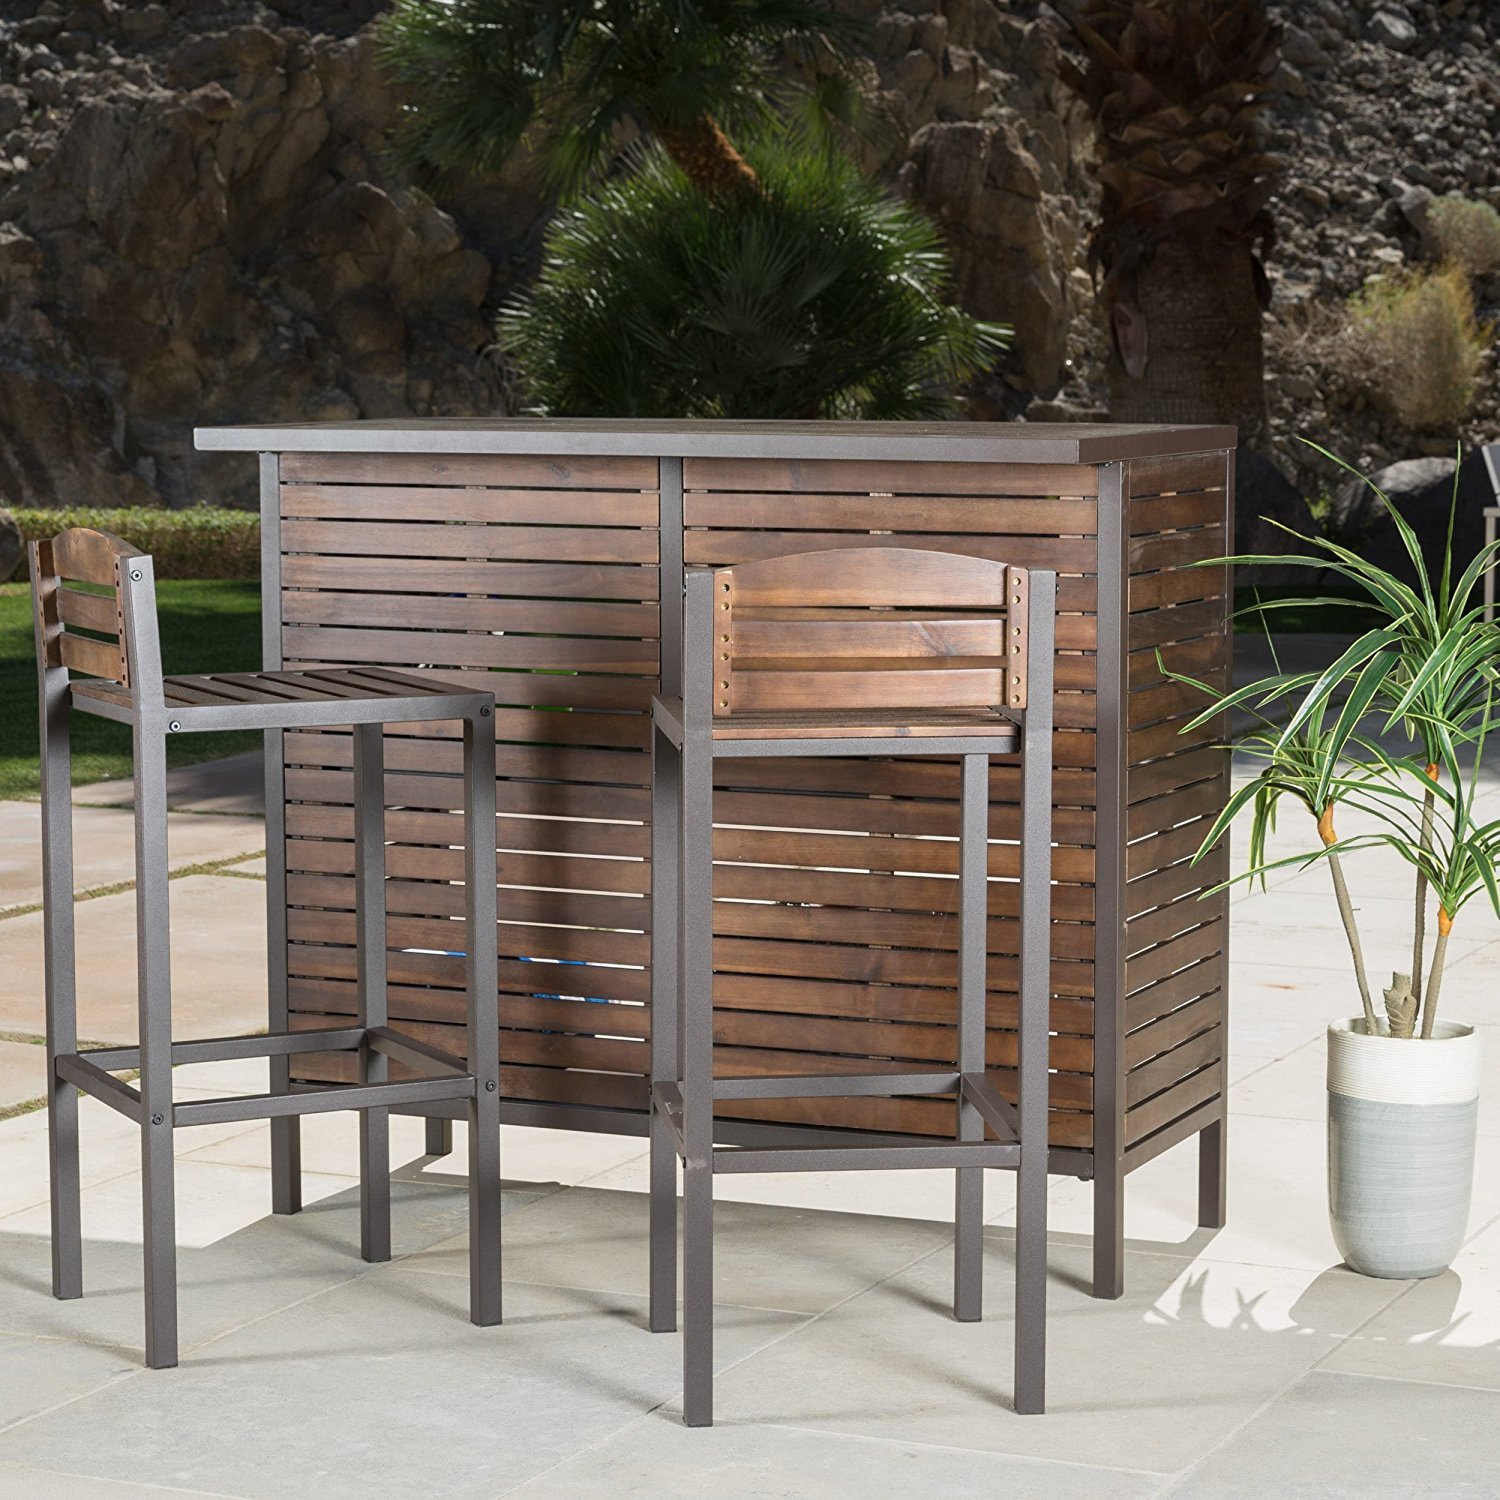 Wood Bistro Bar Set - Rectangle Acacia Wood Brown Iron Bohemian Modern Rustic Bar Set - Transform Your Backyard Into an Entertainment Center with The Outdoor 3-Piece Acacia Wood Bar Set